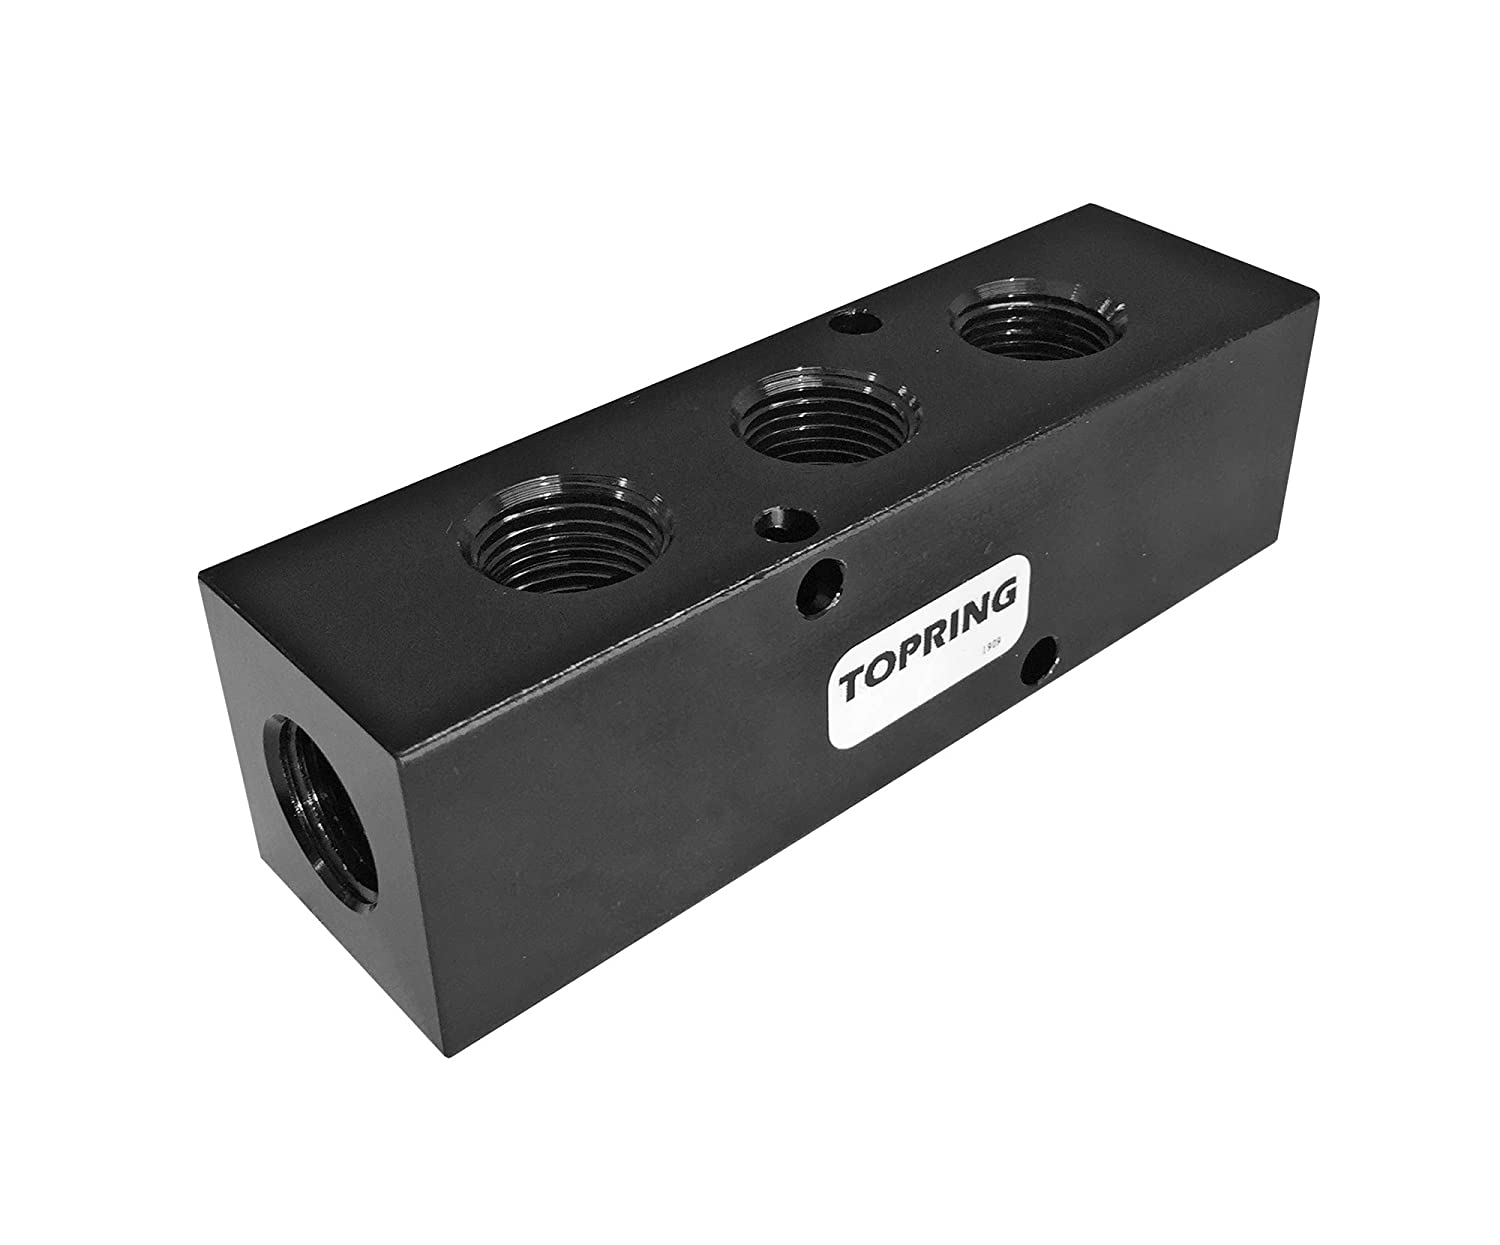 Anodized Aluminium with mounting Holes TOPRING 1000 PSI Multi Port Air Compressor Manifold Block